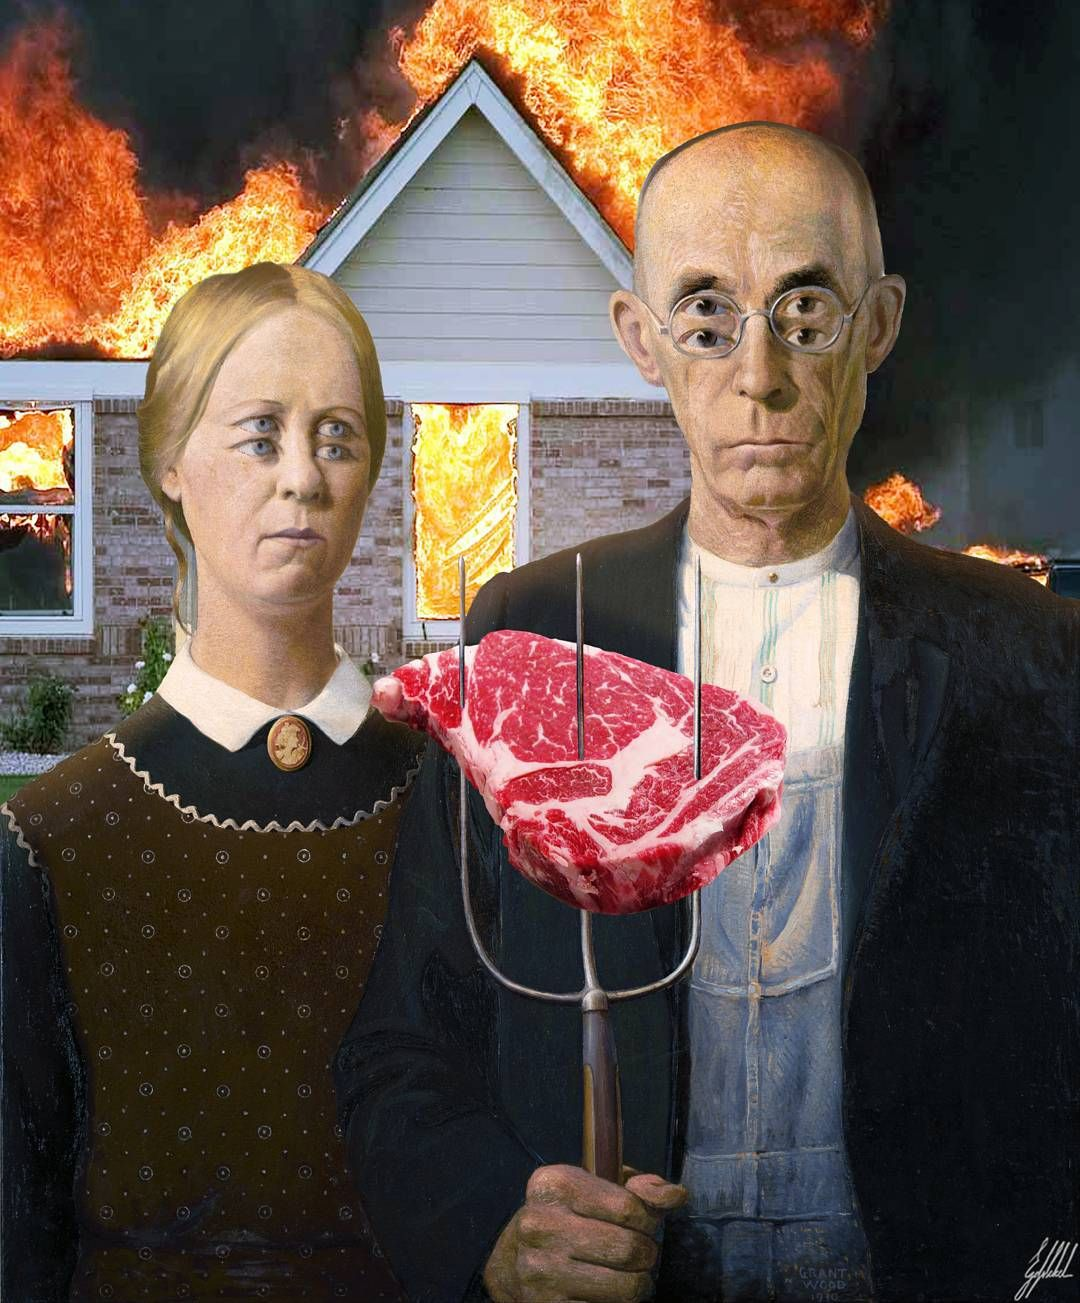 Americangothic Grantwood Famous Painting Bbq Fire Art Artwork Up The Grill It S Time American Gothic Is A By Grant Wood